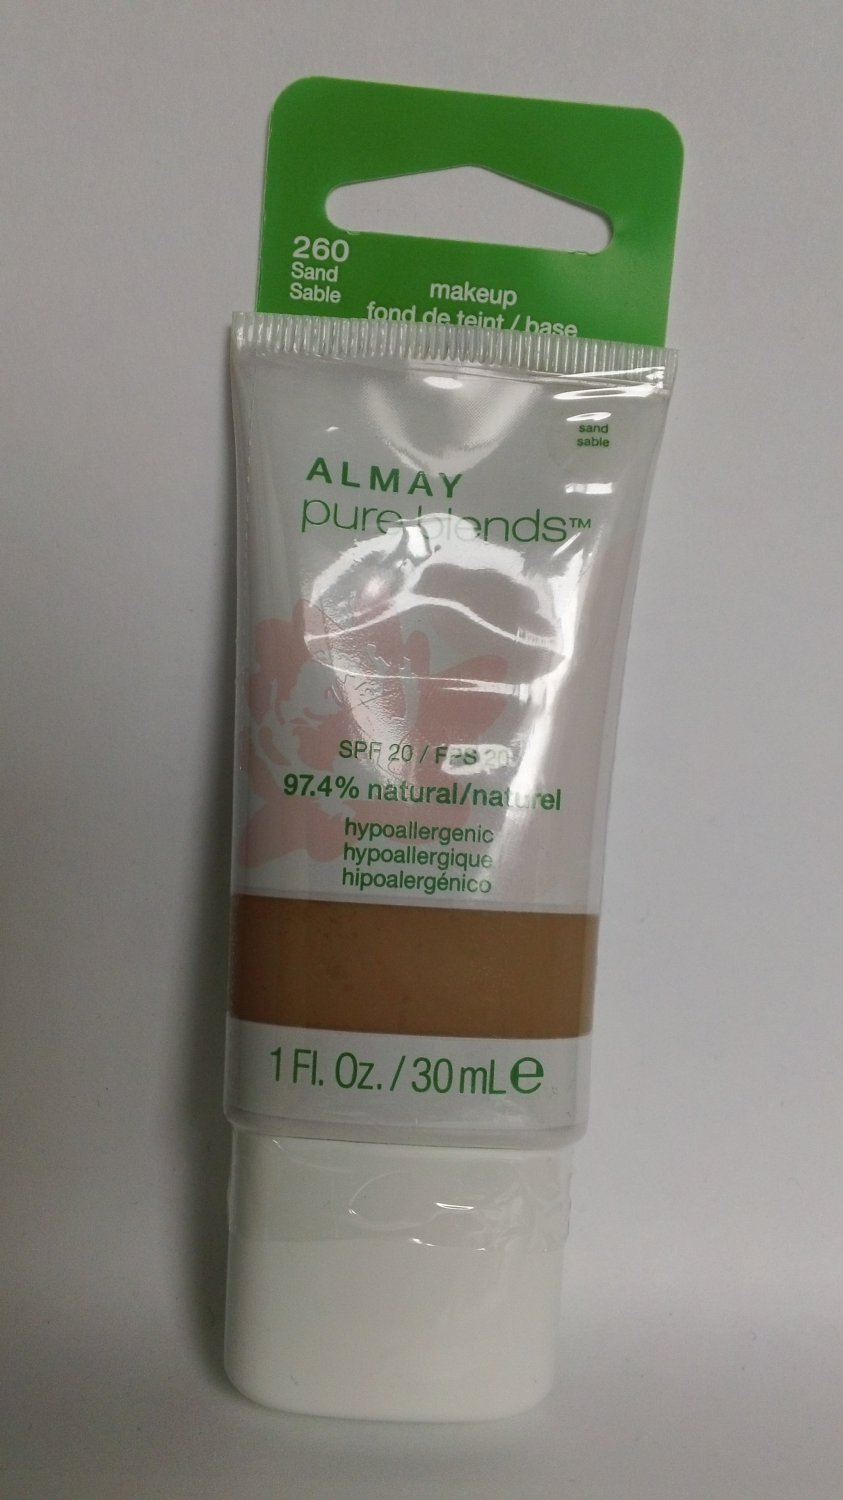 Almay Pure Blends Makeup Foundation #260 Sand